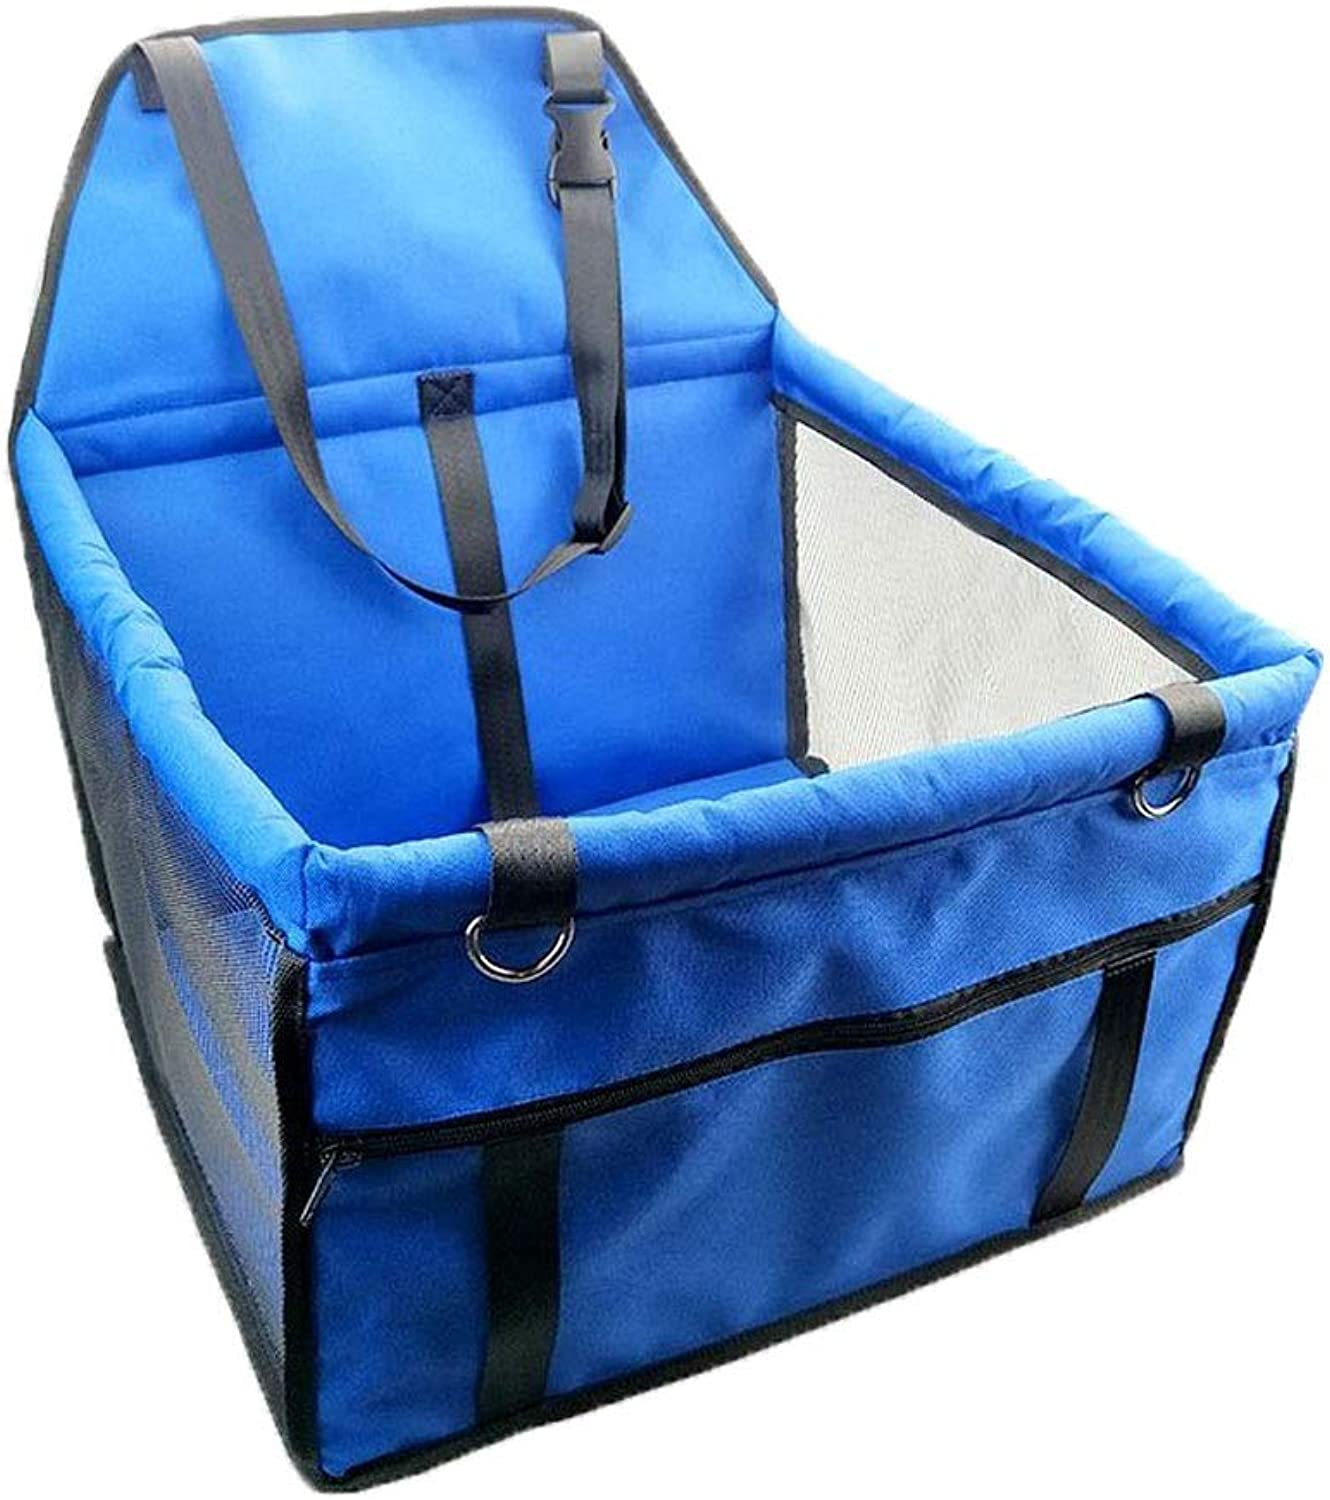 Pet Dog car Booster seat Portable Collapsible pet car car Travel Accessories Dog cat Waterproof NonSlip Bag (color   bluee)